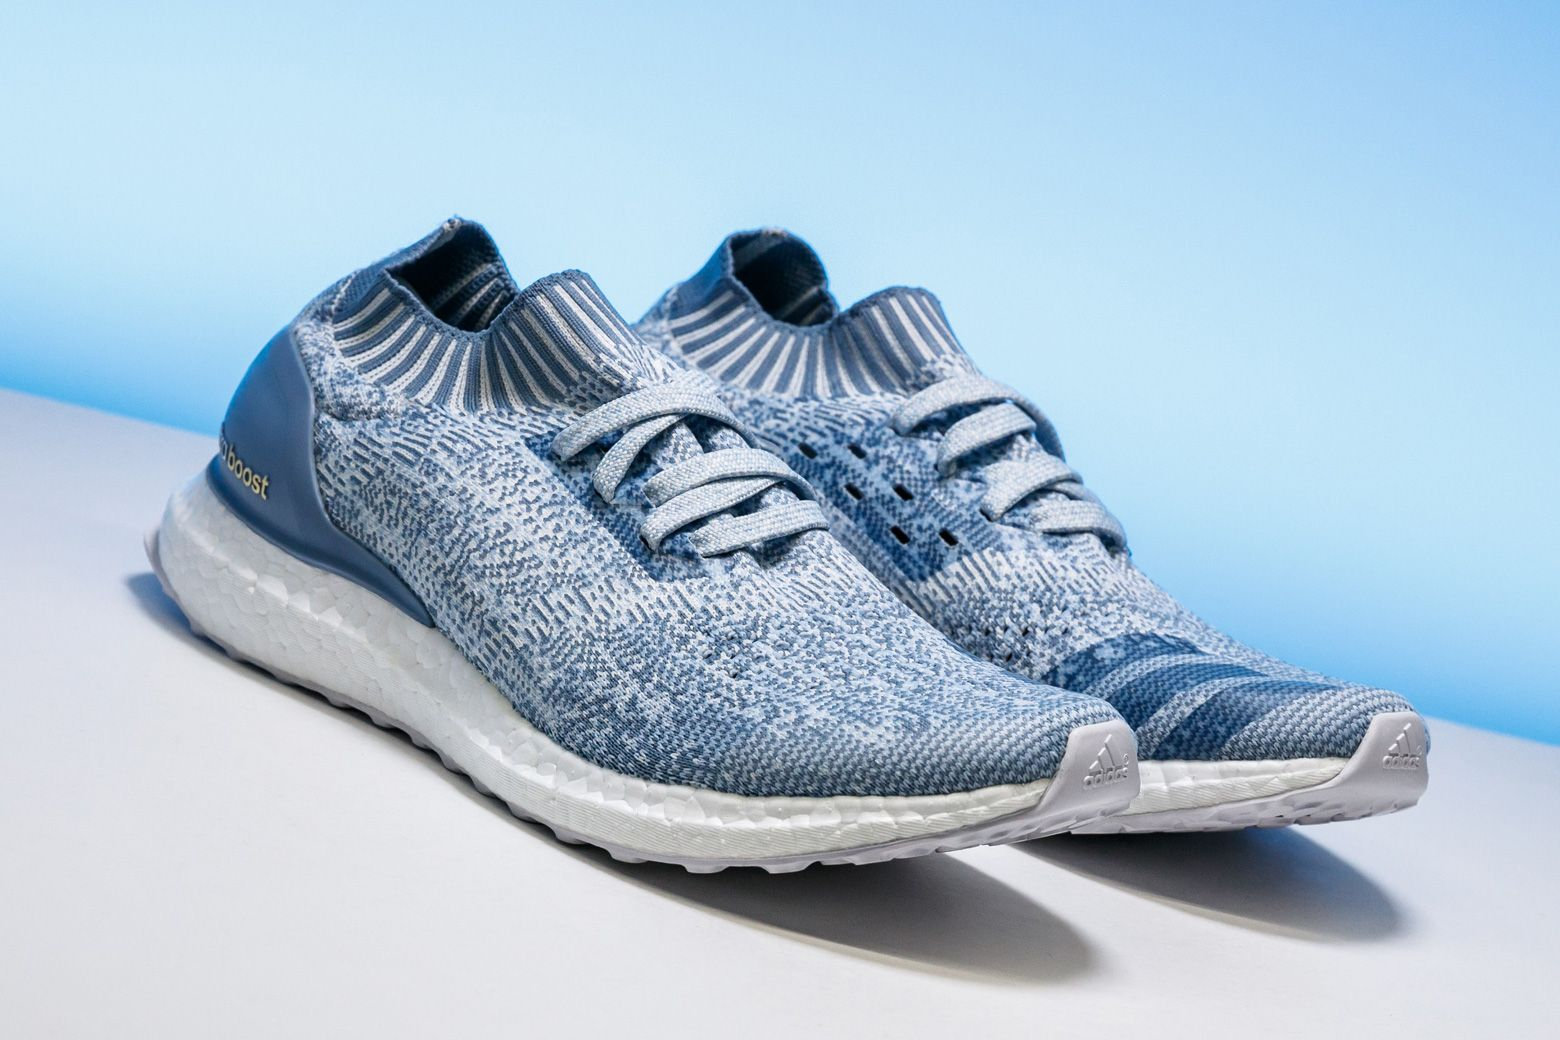 38e4b9ab80ff8 This cageless women s version of the adidas Ultra Boost features an  eye-catching light blue colorway.